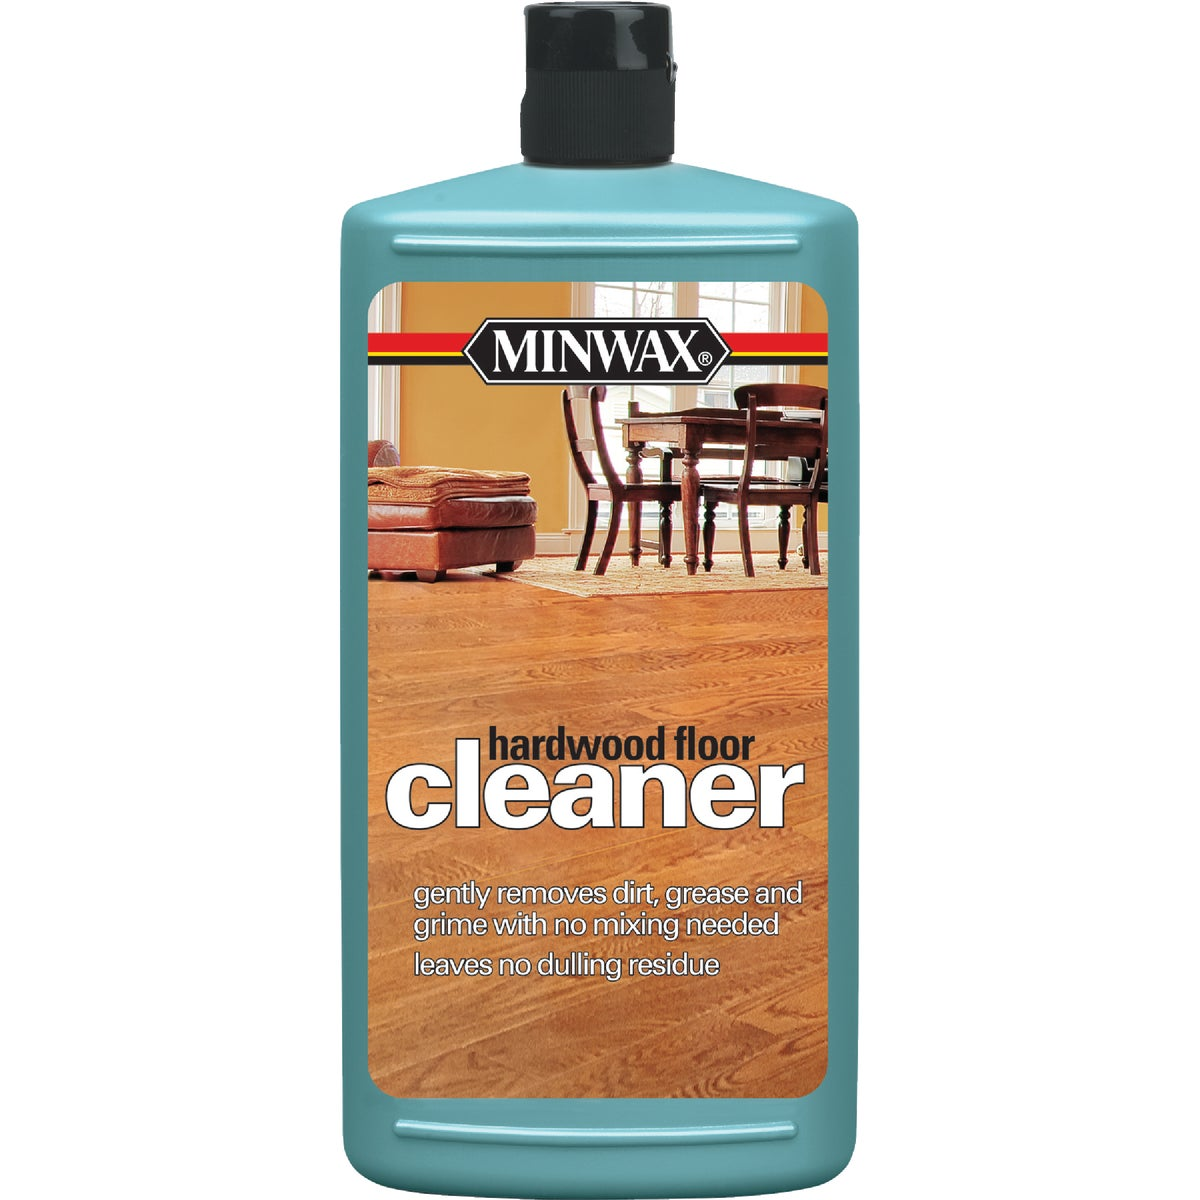 32OZ WOOD FLOOR CLEANER - 621270004 by Minwax Company